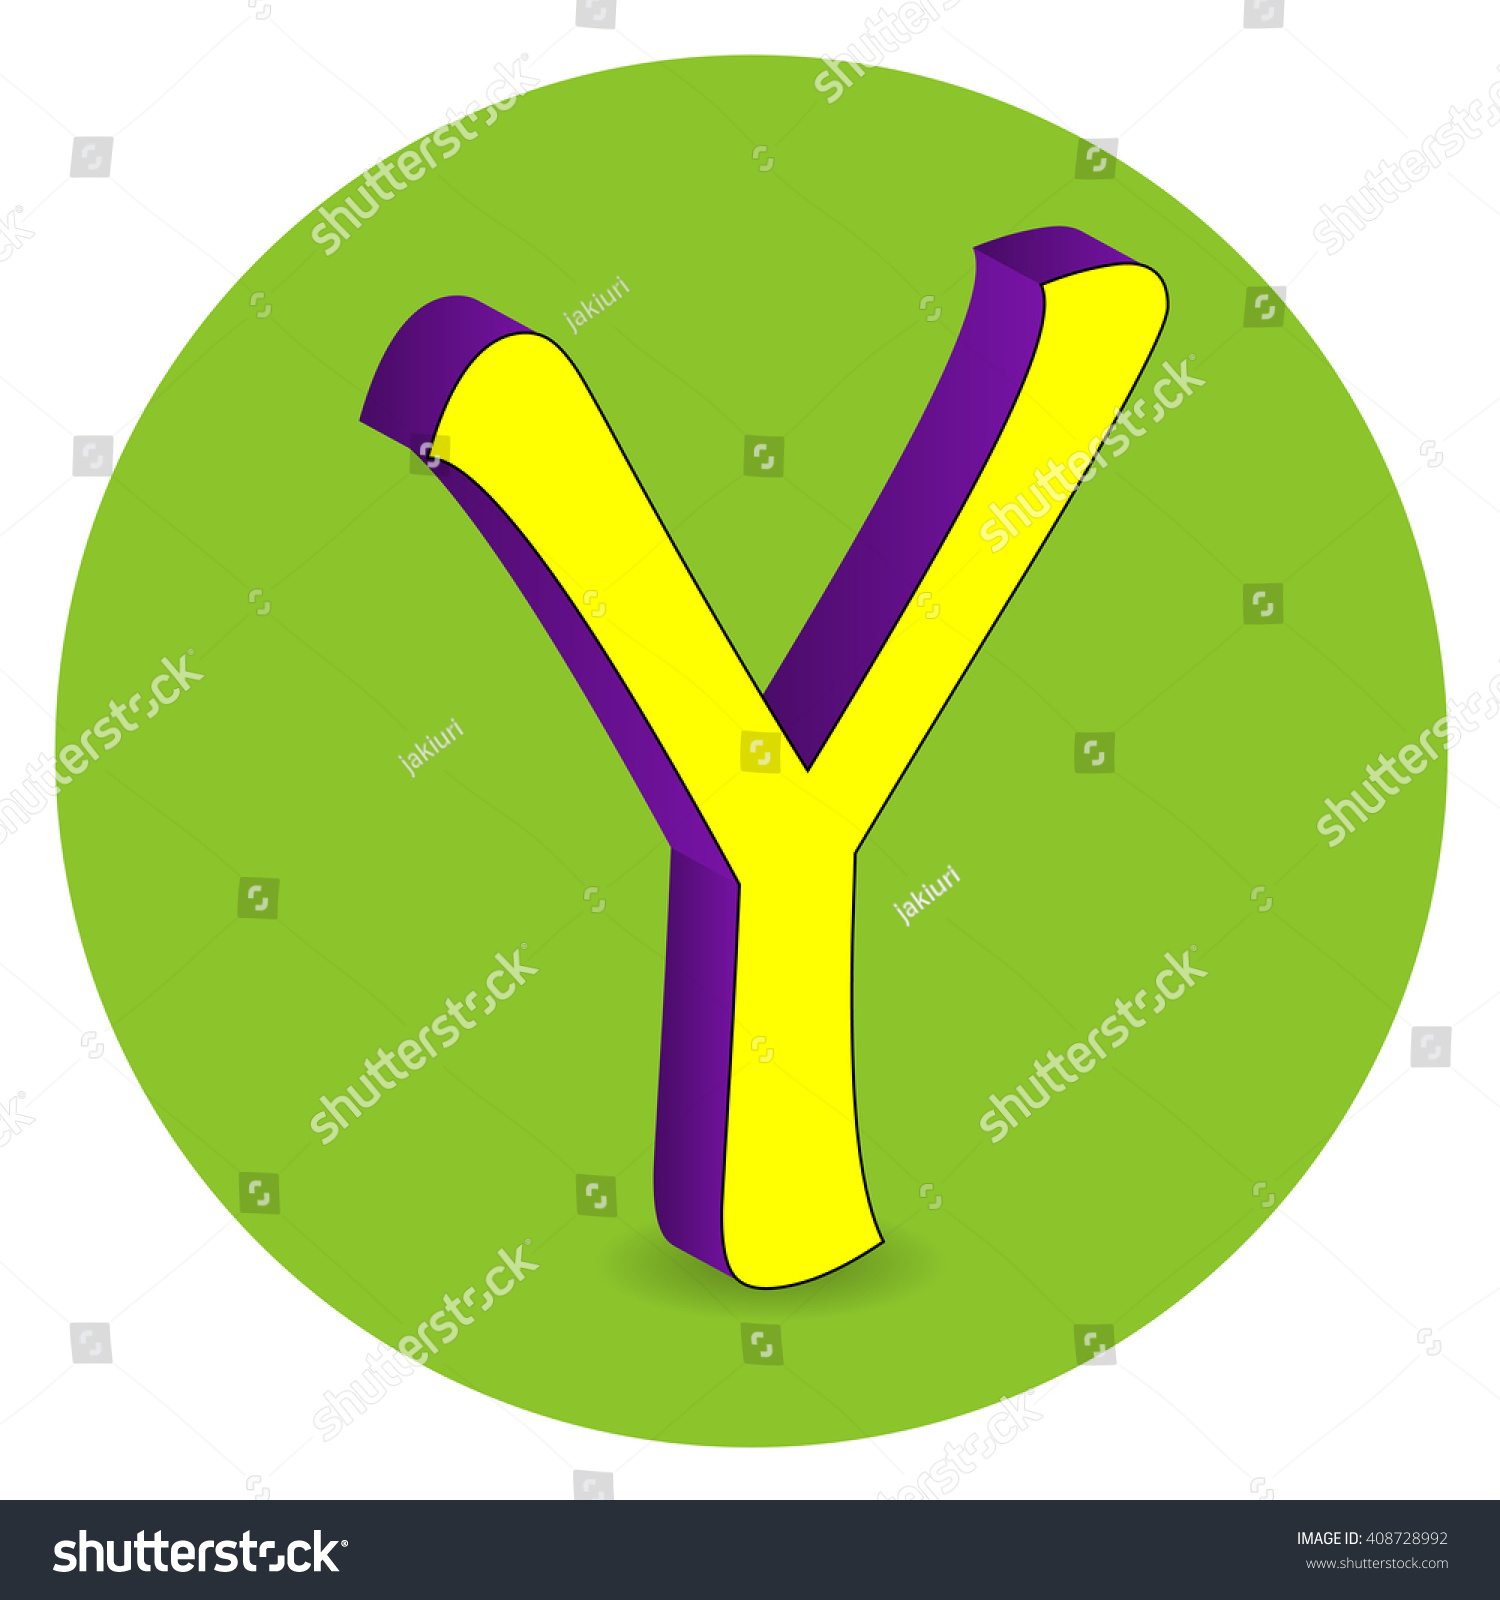 3d purple yellow letter y on stock vector 408728992 shutterstock 3d purple and yellow letter y on green circle background sciox Images